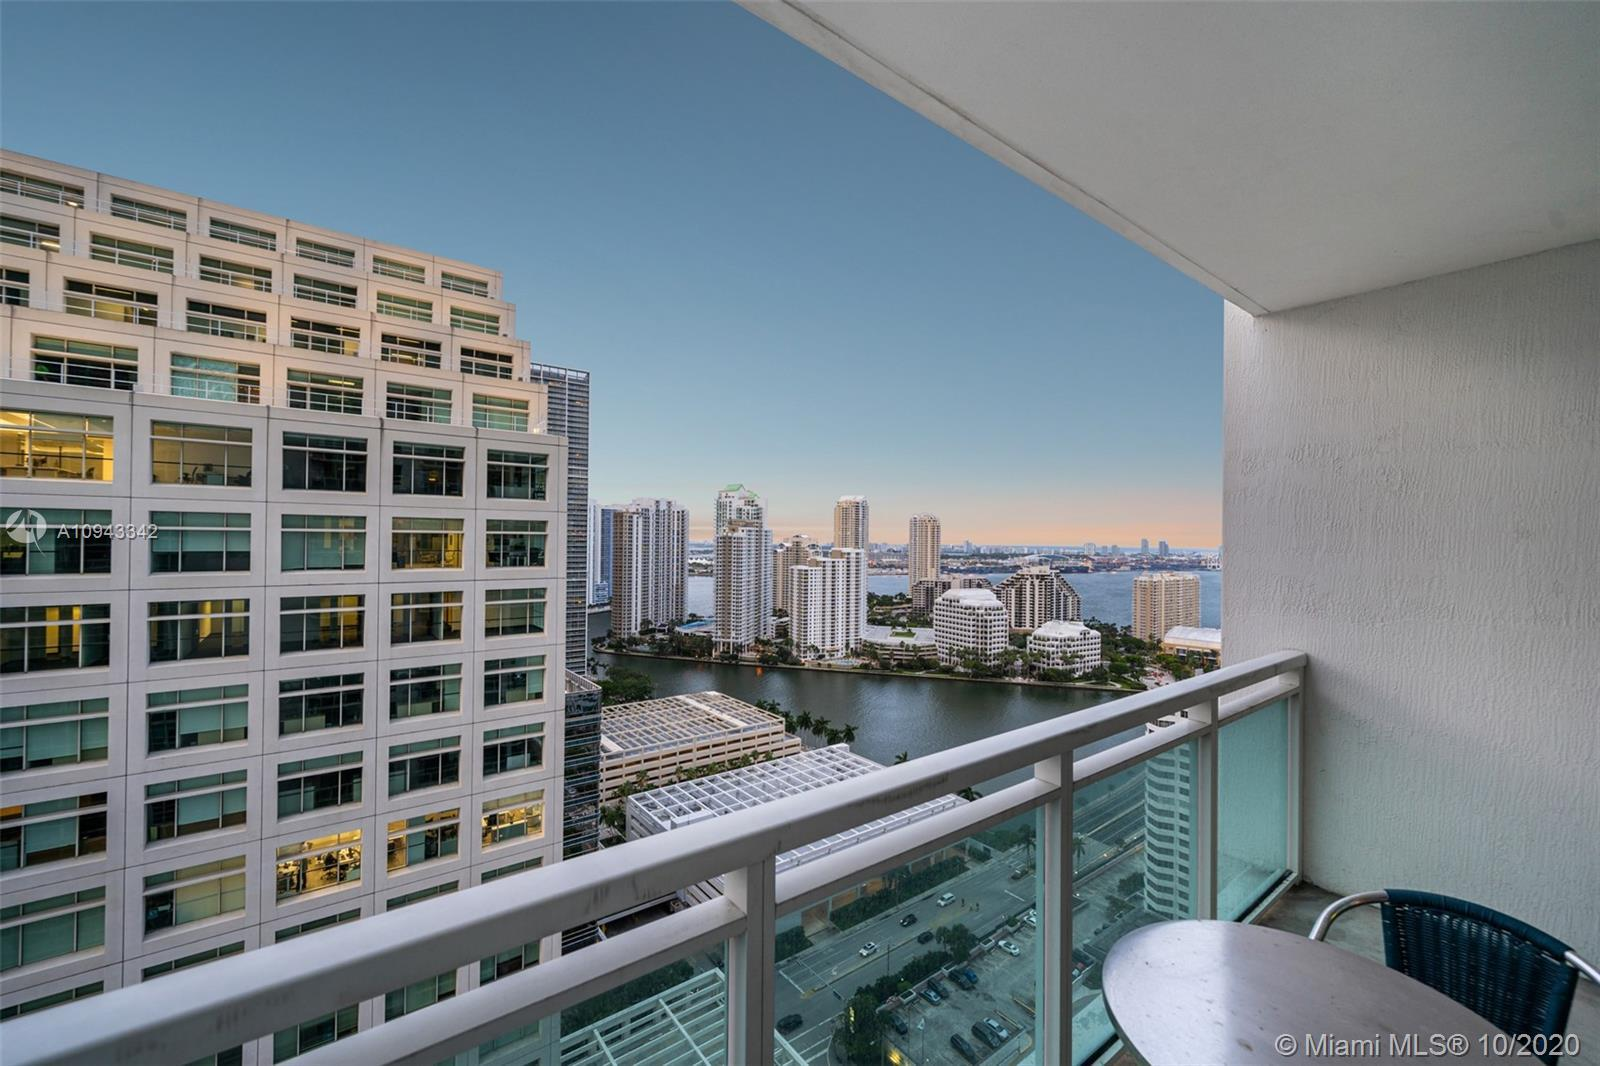 Live Limitlessly in this delightful 30th floor unit at The Plaza overlooking Biscayne Bay. This clas